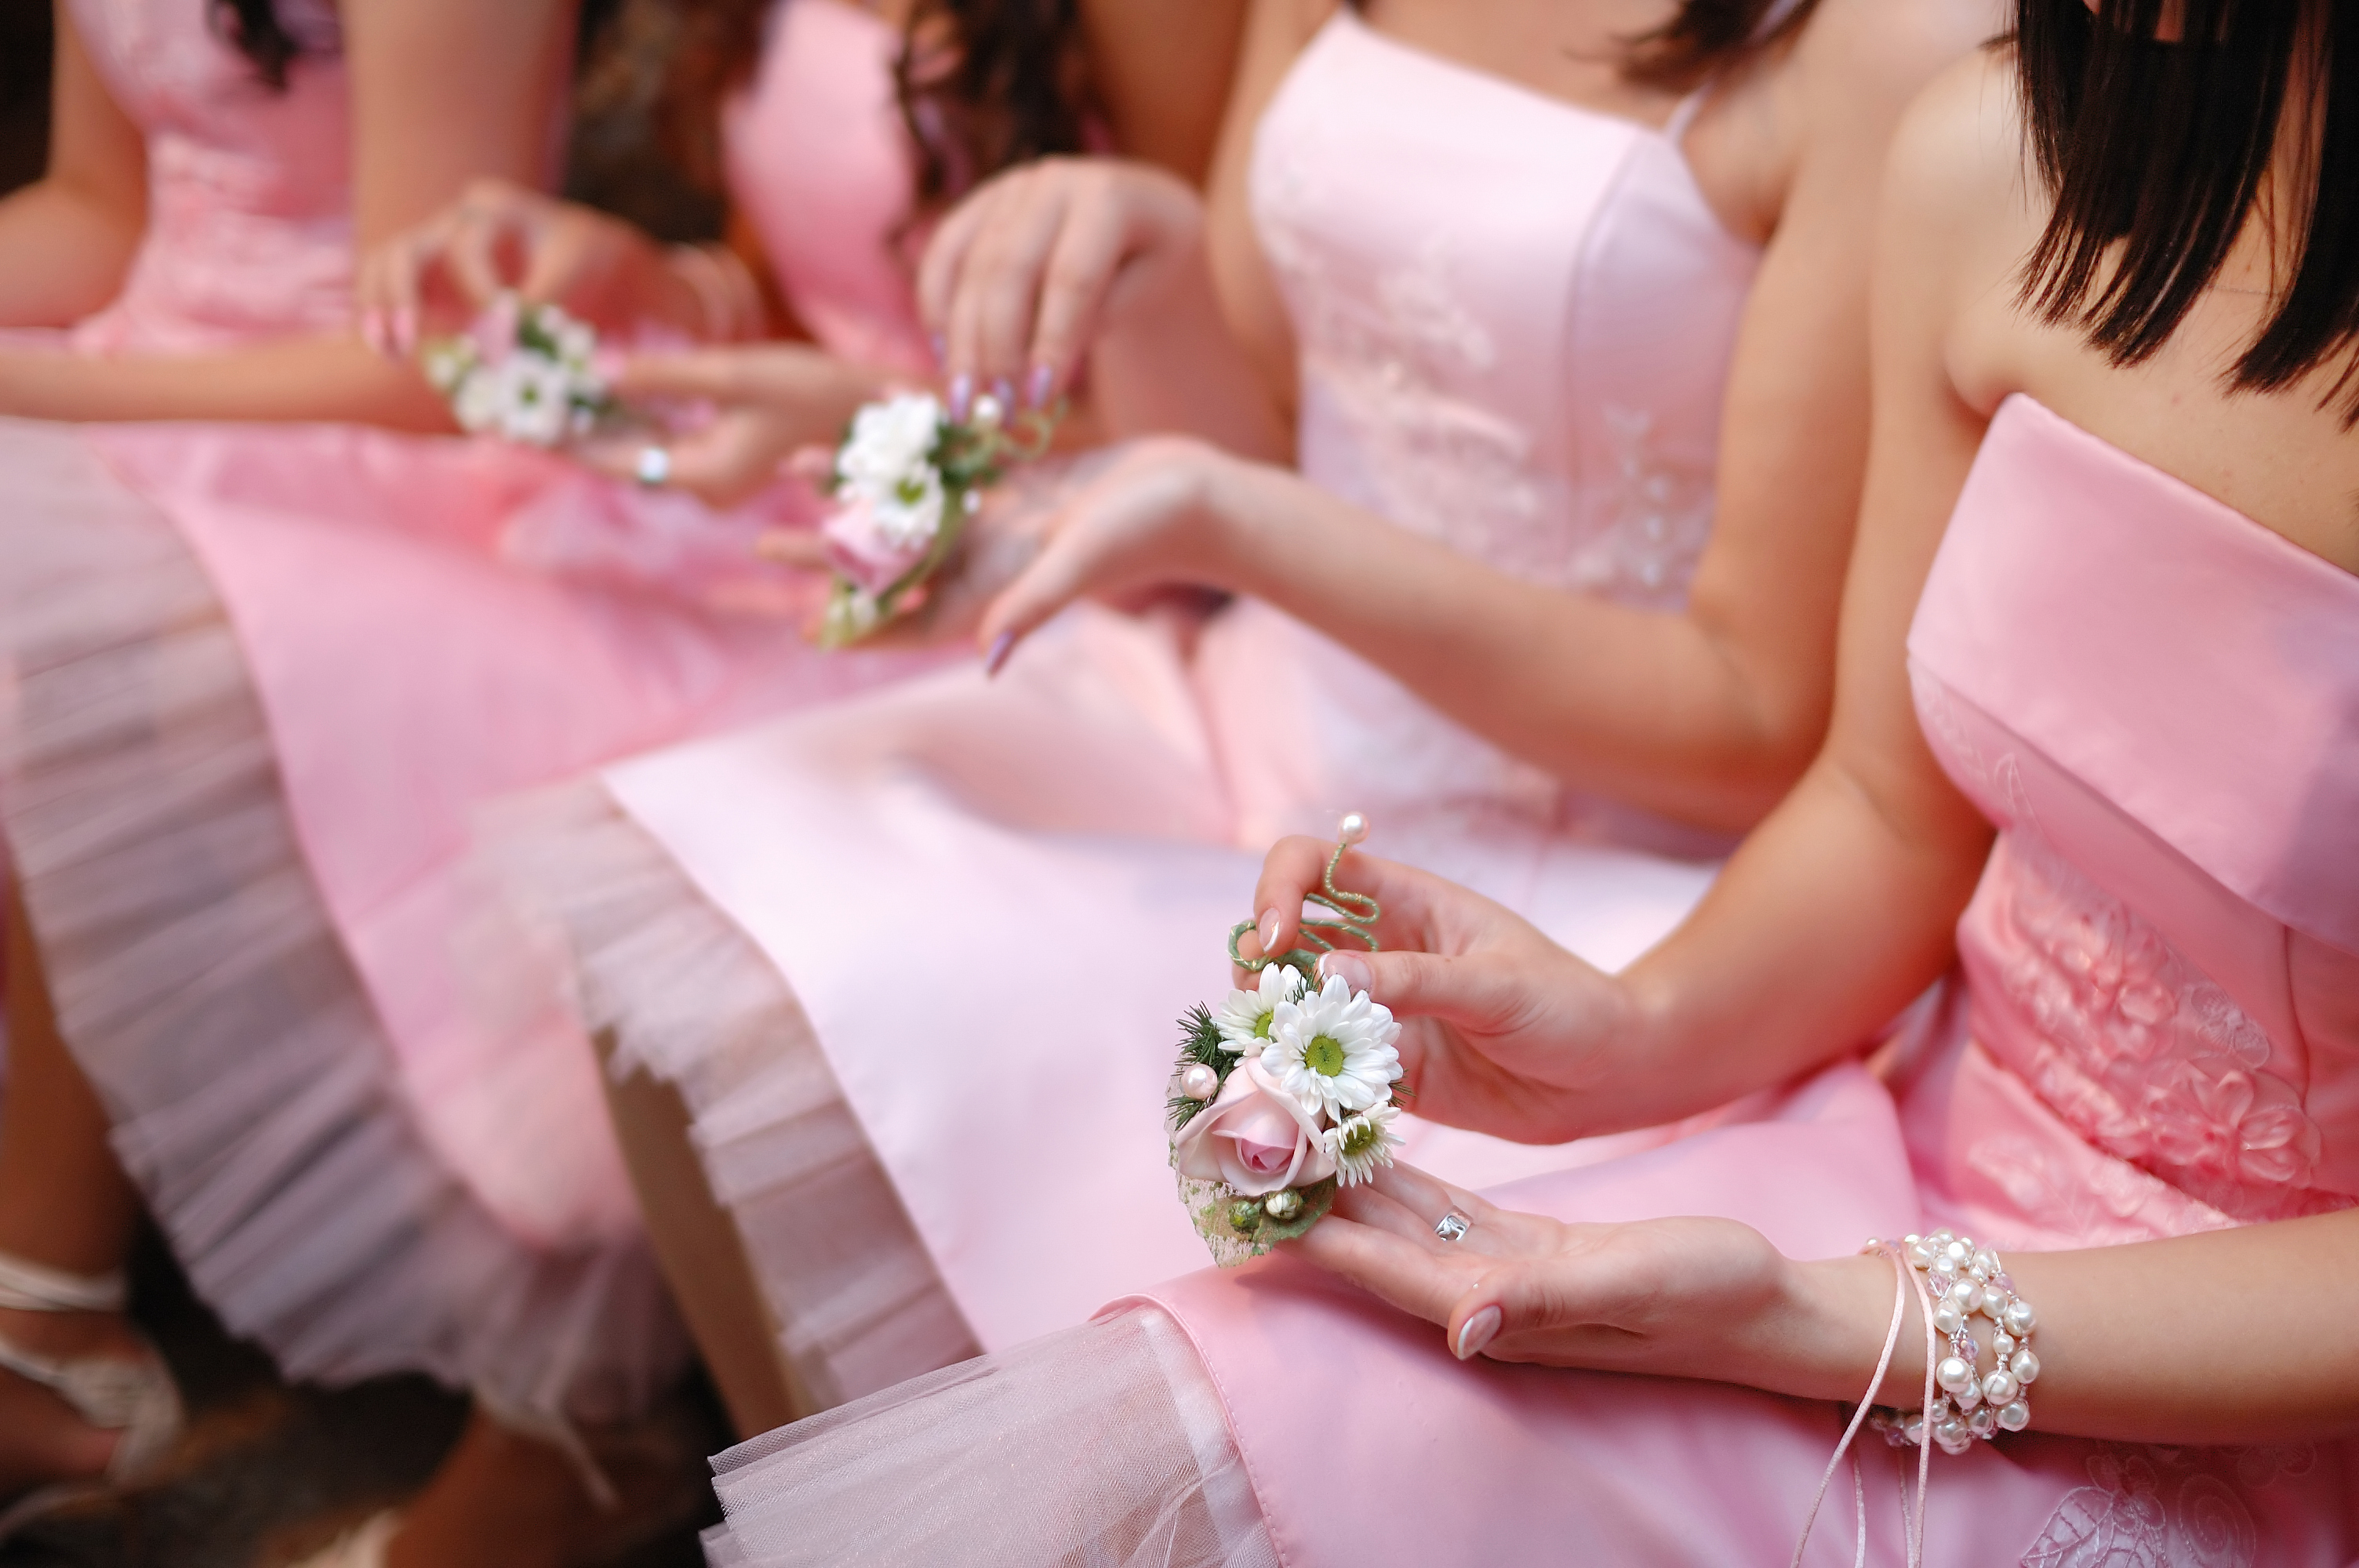 Bridesmaid dress colours articles easy weddings here are five popular bridesmaid dress colours to inspire you ombrellifo Choice Image